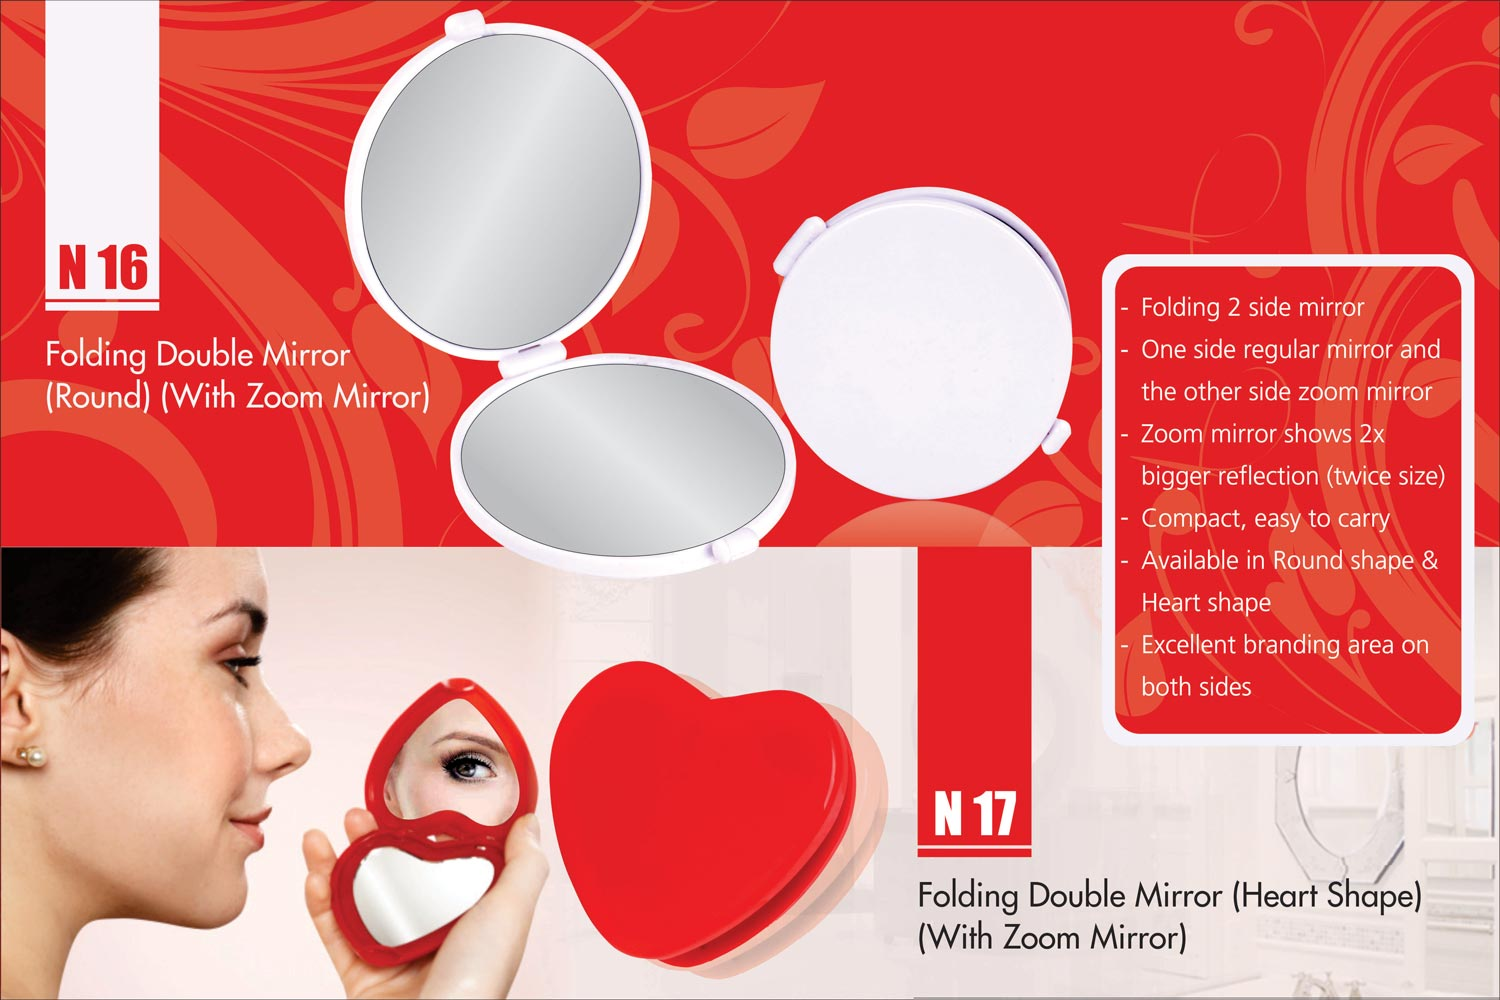 N17 - Folding Double Mirror (Heart shape with zoom mirror)